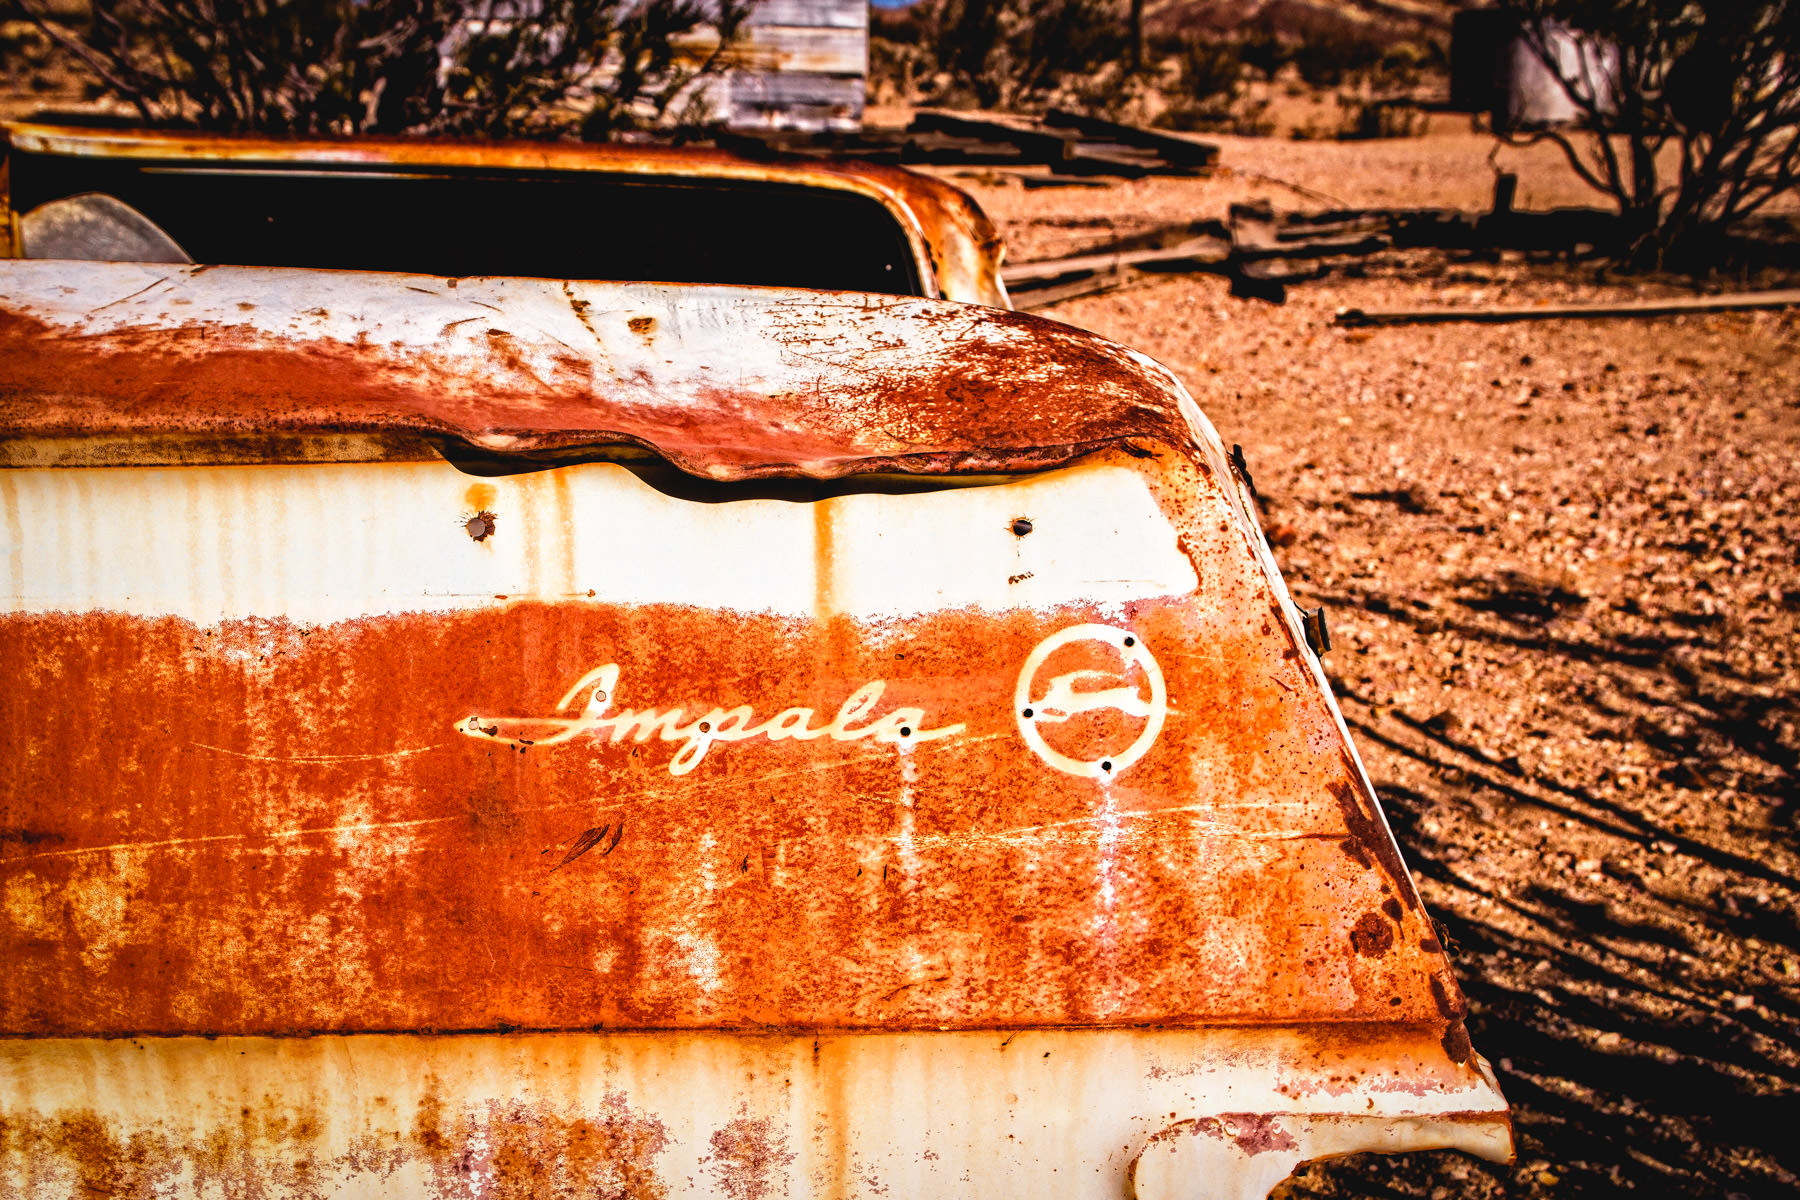 Detail of an abandoned Chevrolet Impala, Rhyolite, Nevada.